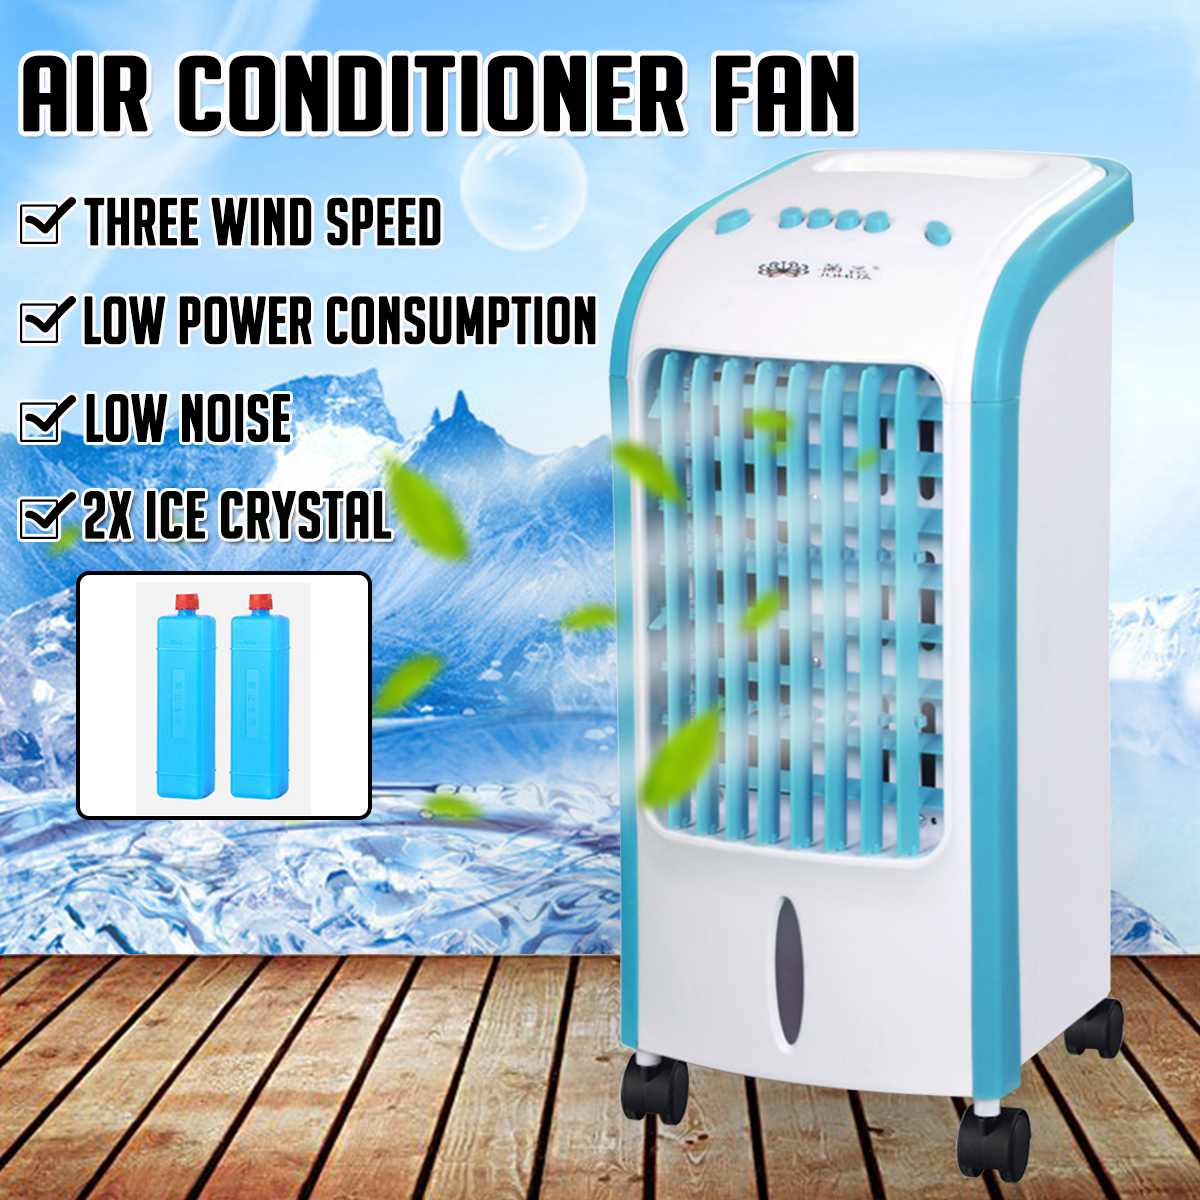 Portable Air Conditioners Air Fan Refrigerator Ice Crystal Fan Humidifier Cooler Air Conditioner Cooling Fan Humidifier